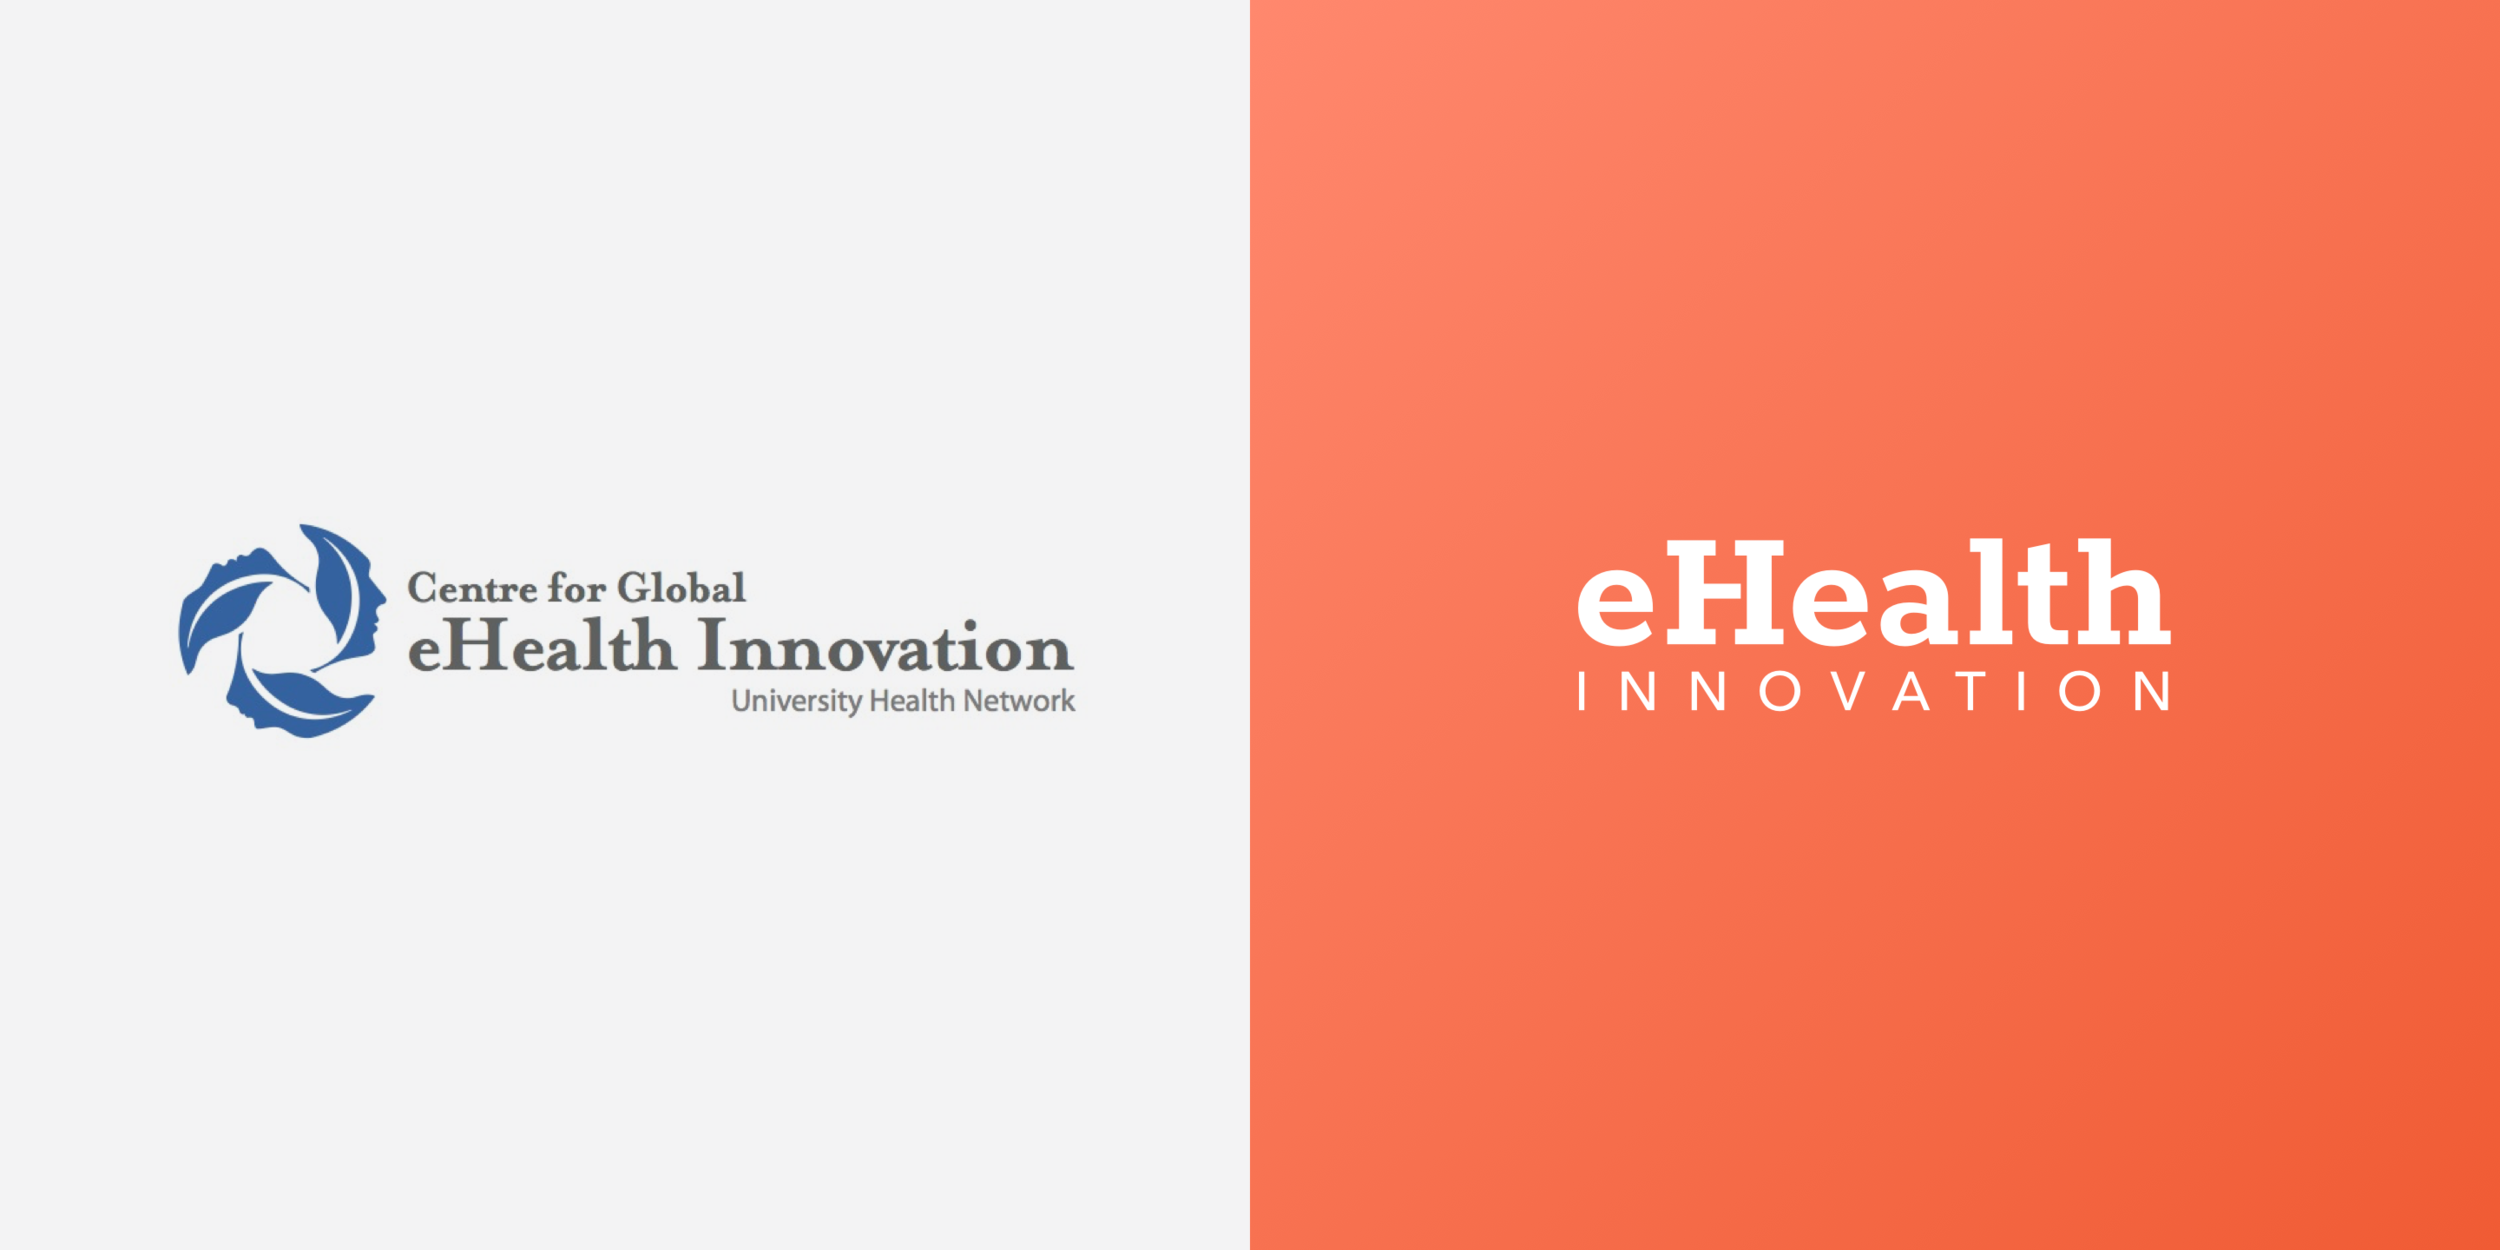 eHealth Innnovation Rebrand Before & After 2.png